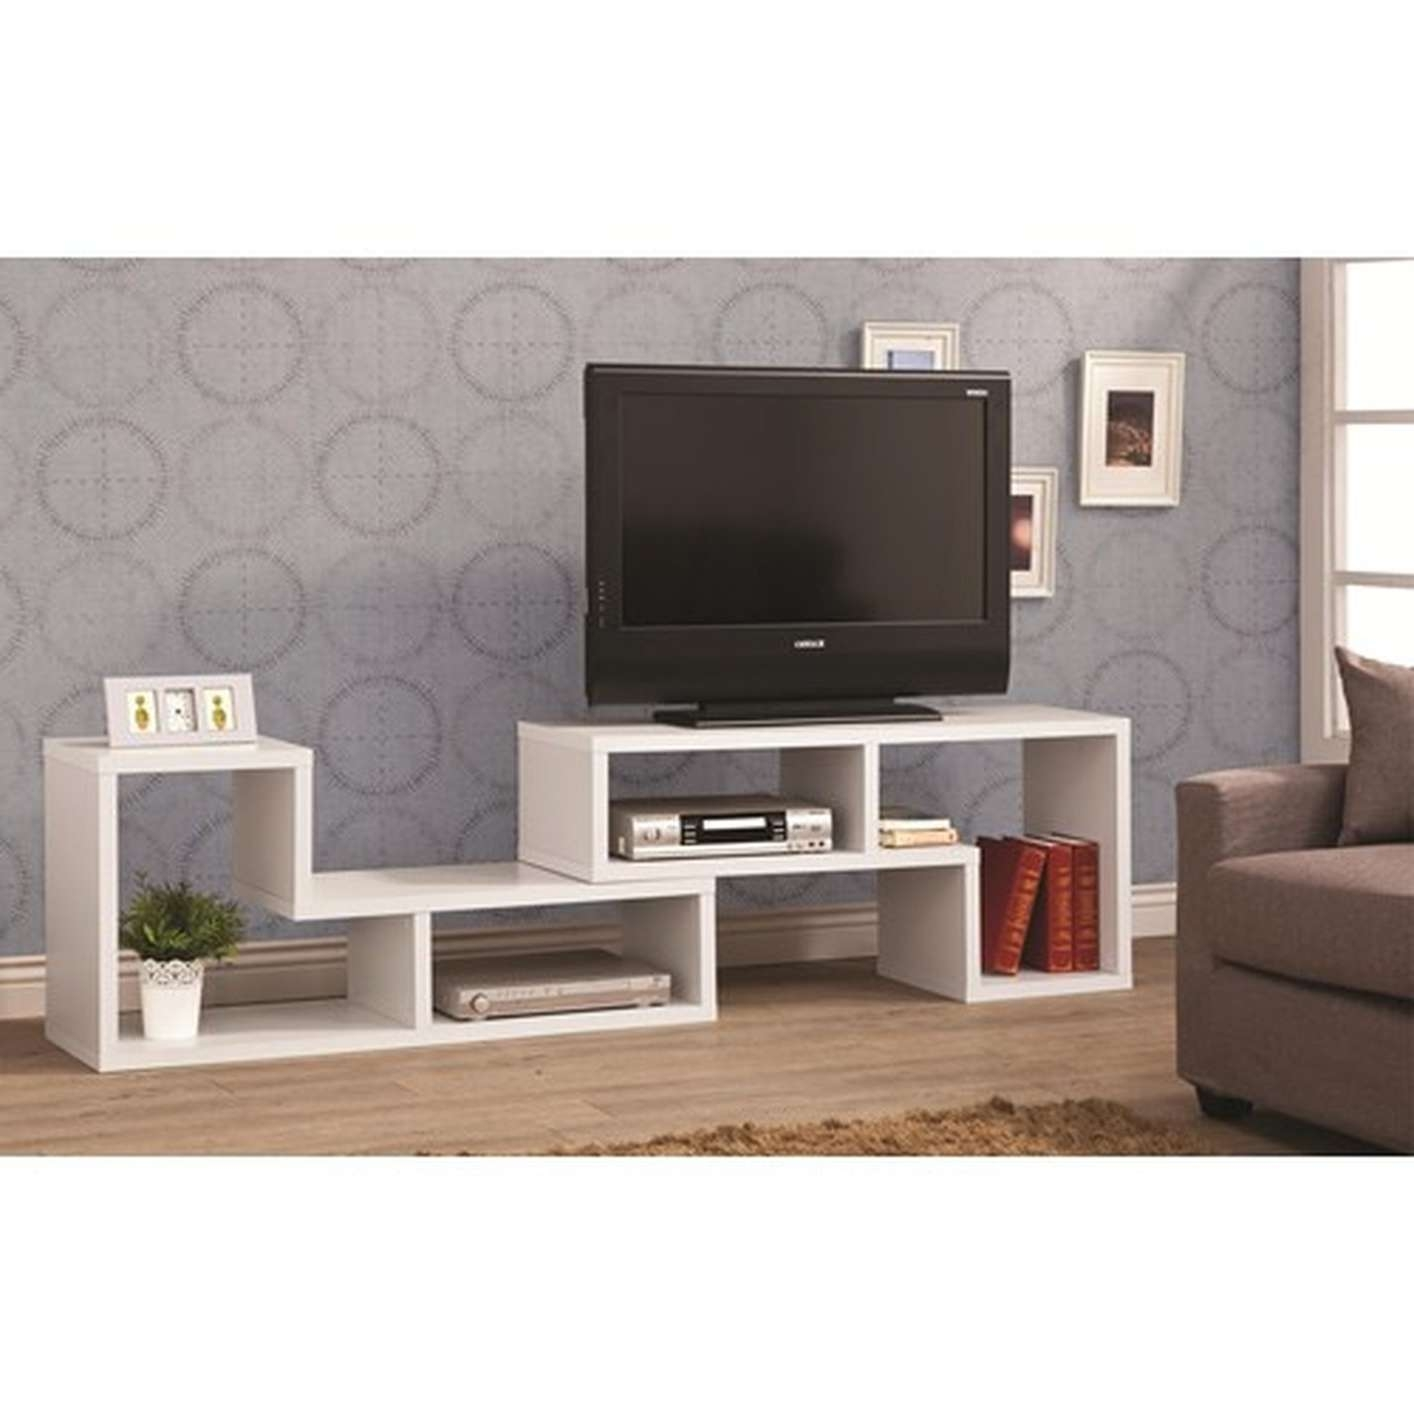 White Wood Tv Stand – Steal A Sofa Furniture Outlet Los Angeles Ca Intended For Wooden Tv Stands (View 14 of 15)